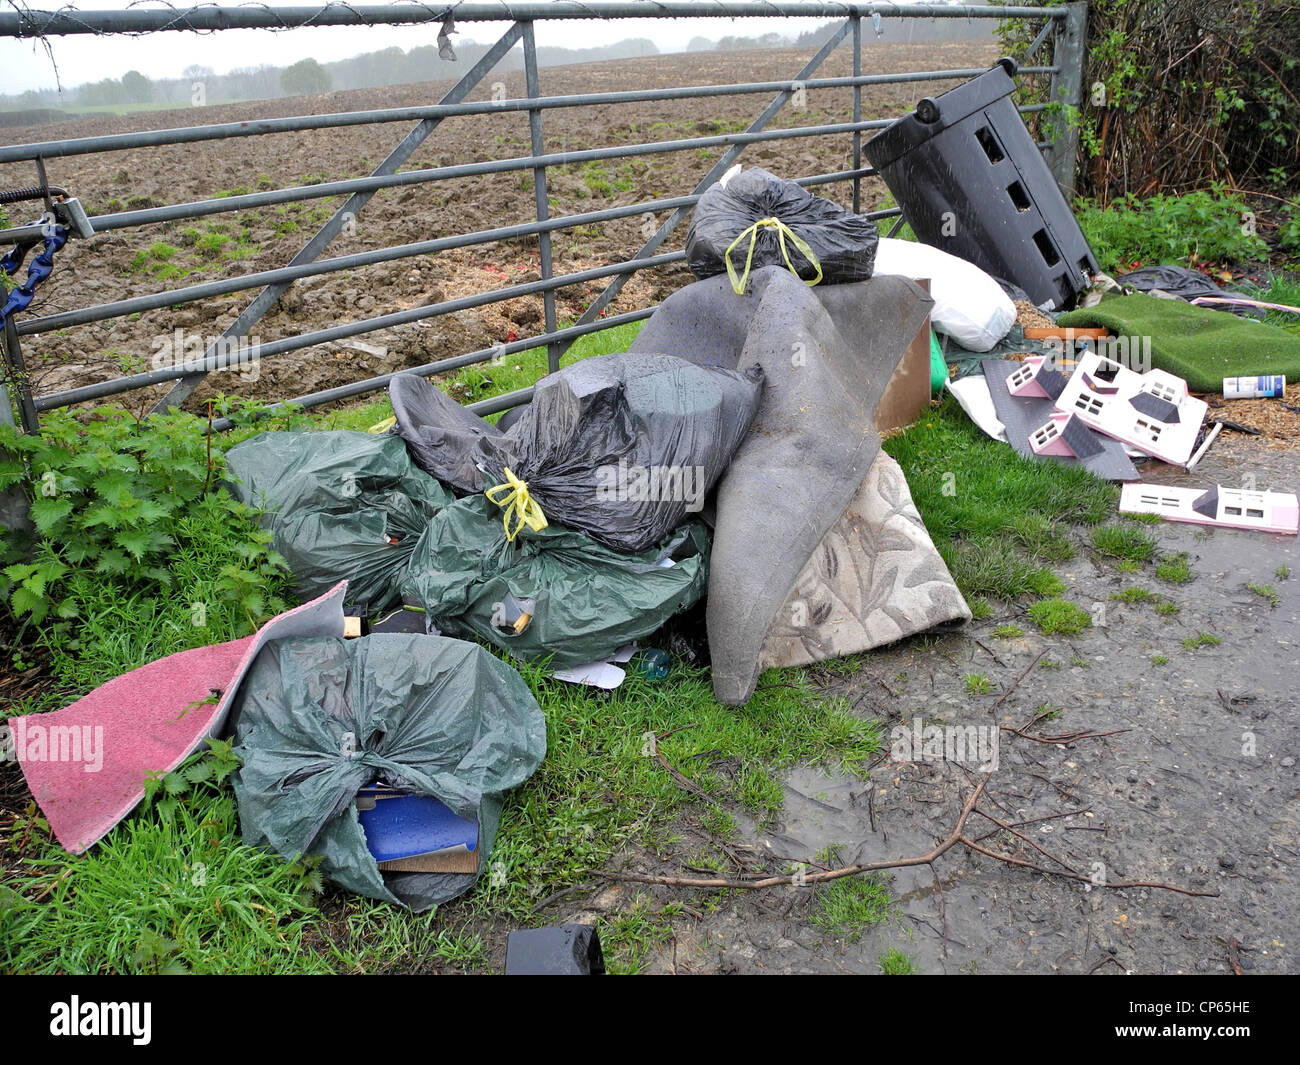 Fly tipping tip in gateway in UK countryside - Stock Image